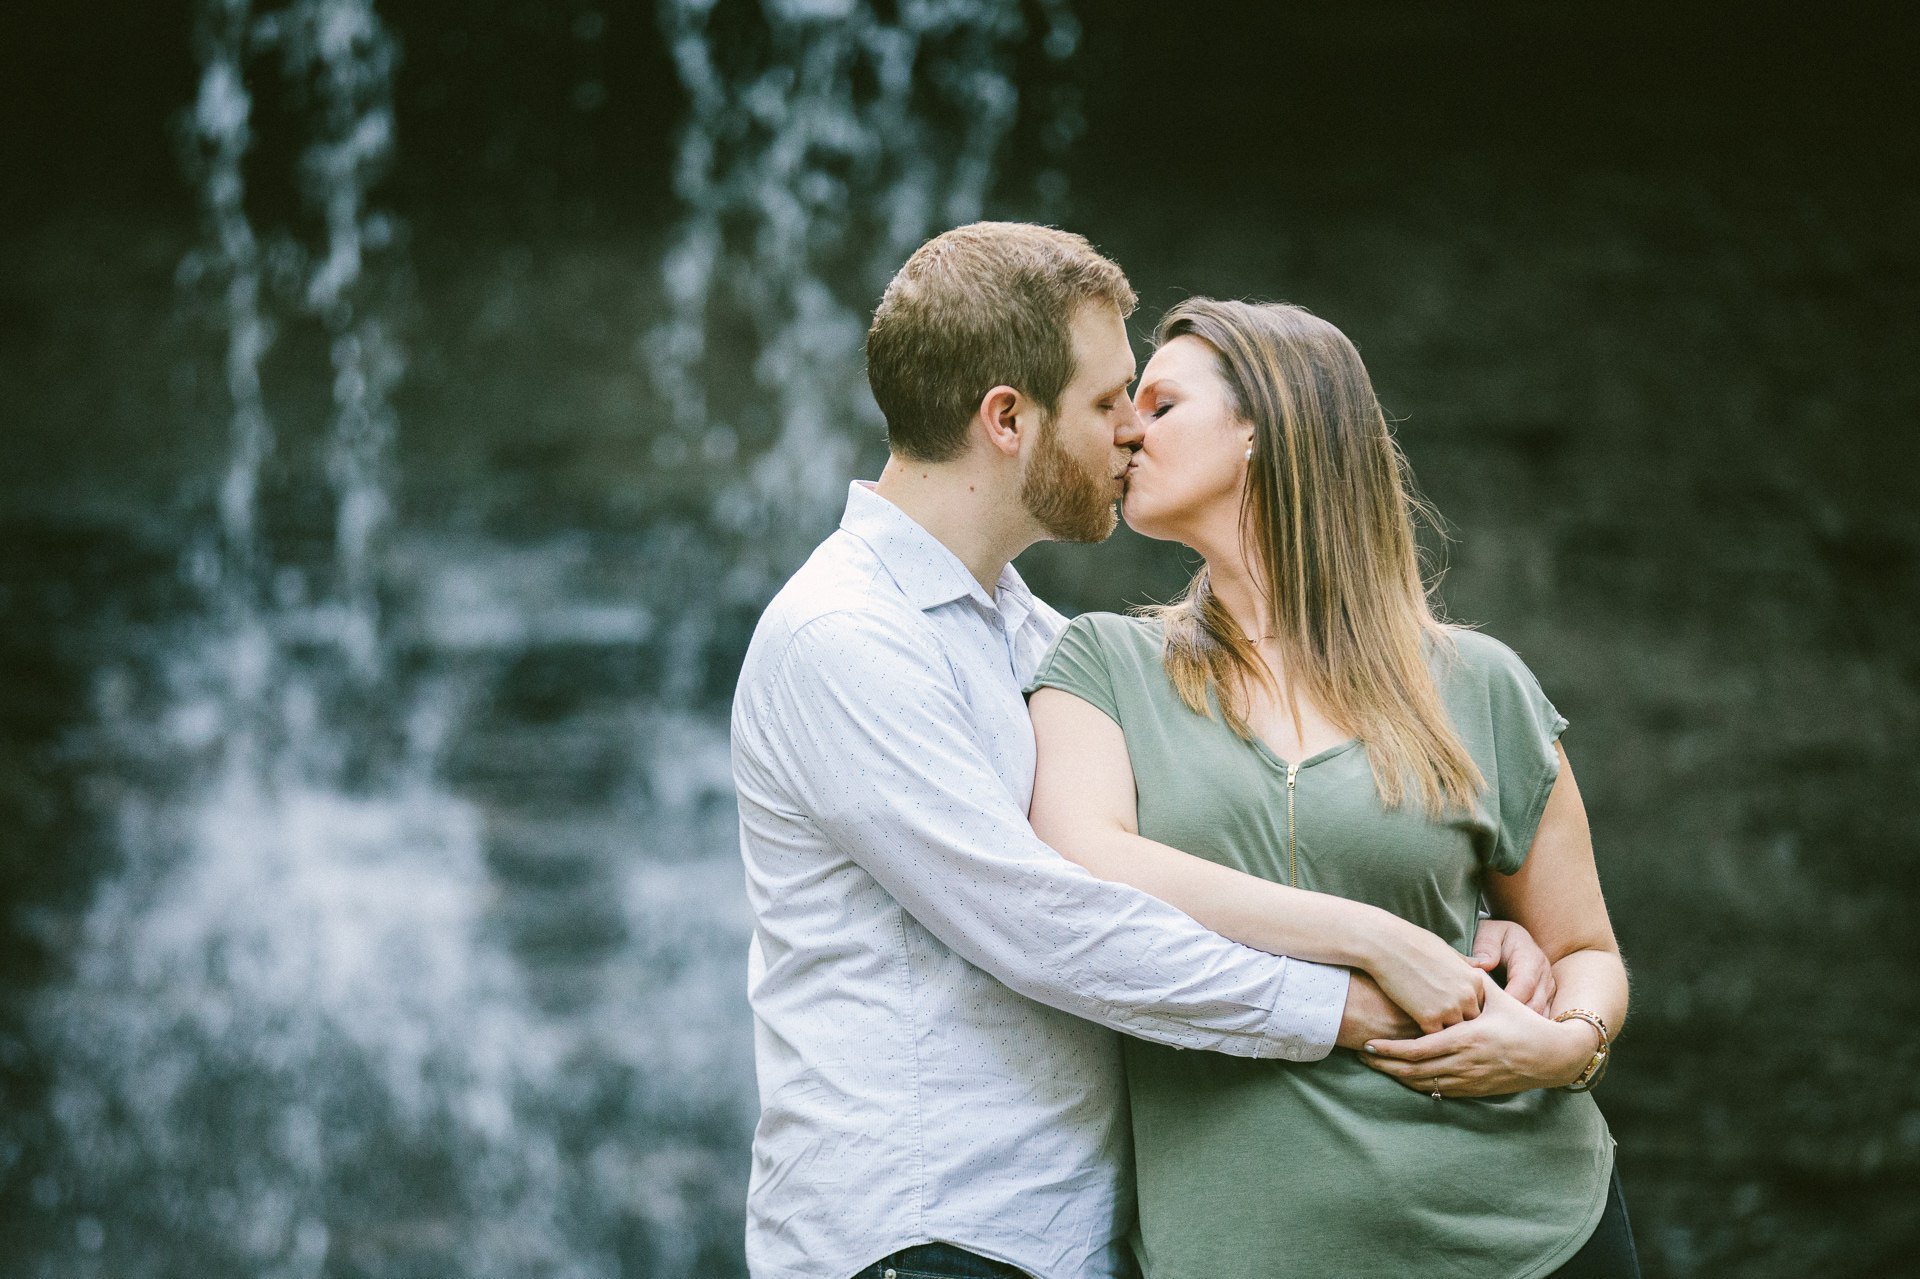 Cuyahoga Valley National Park Engagement Photos 7.jpg